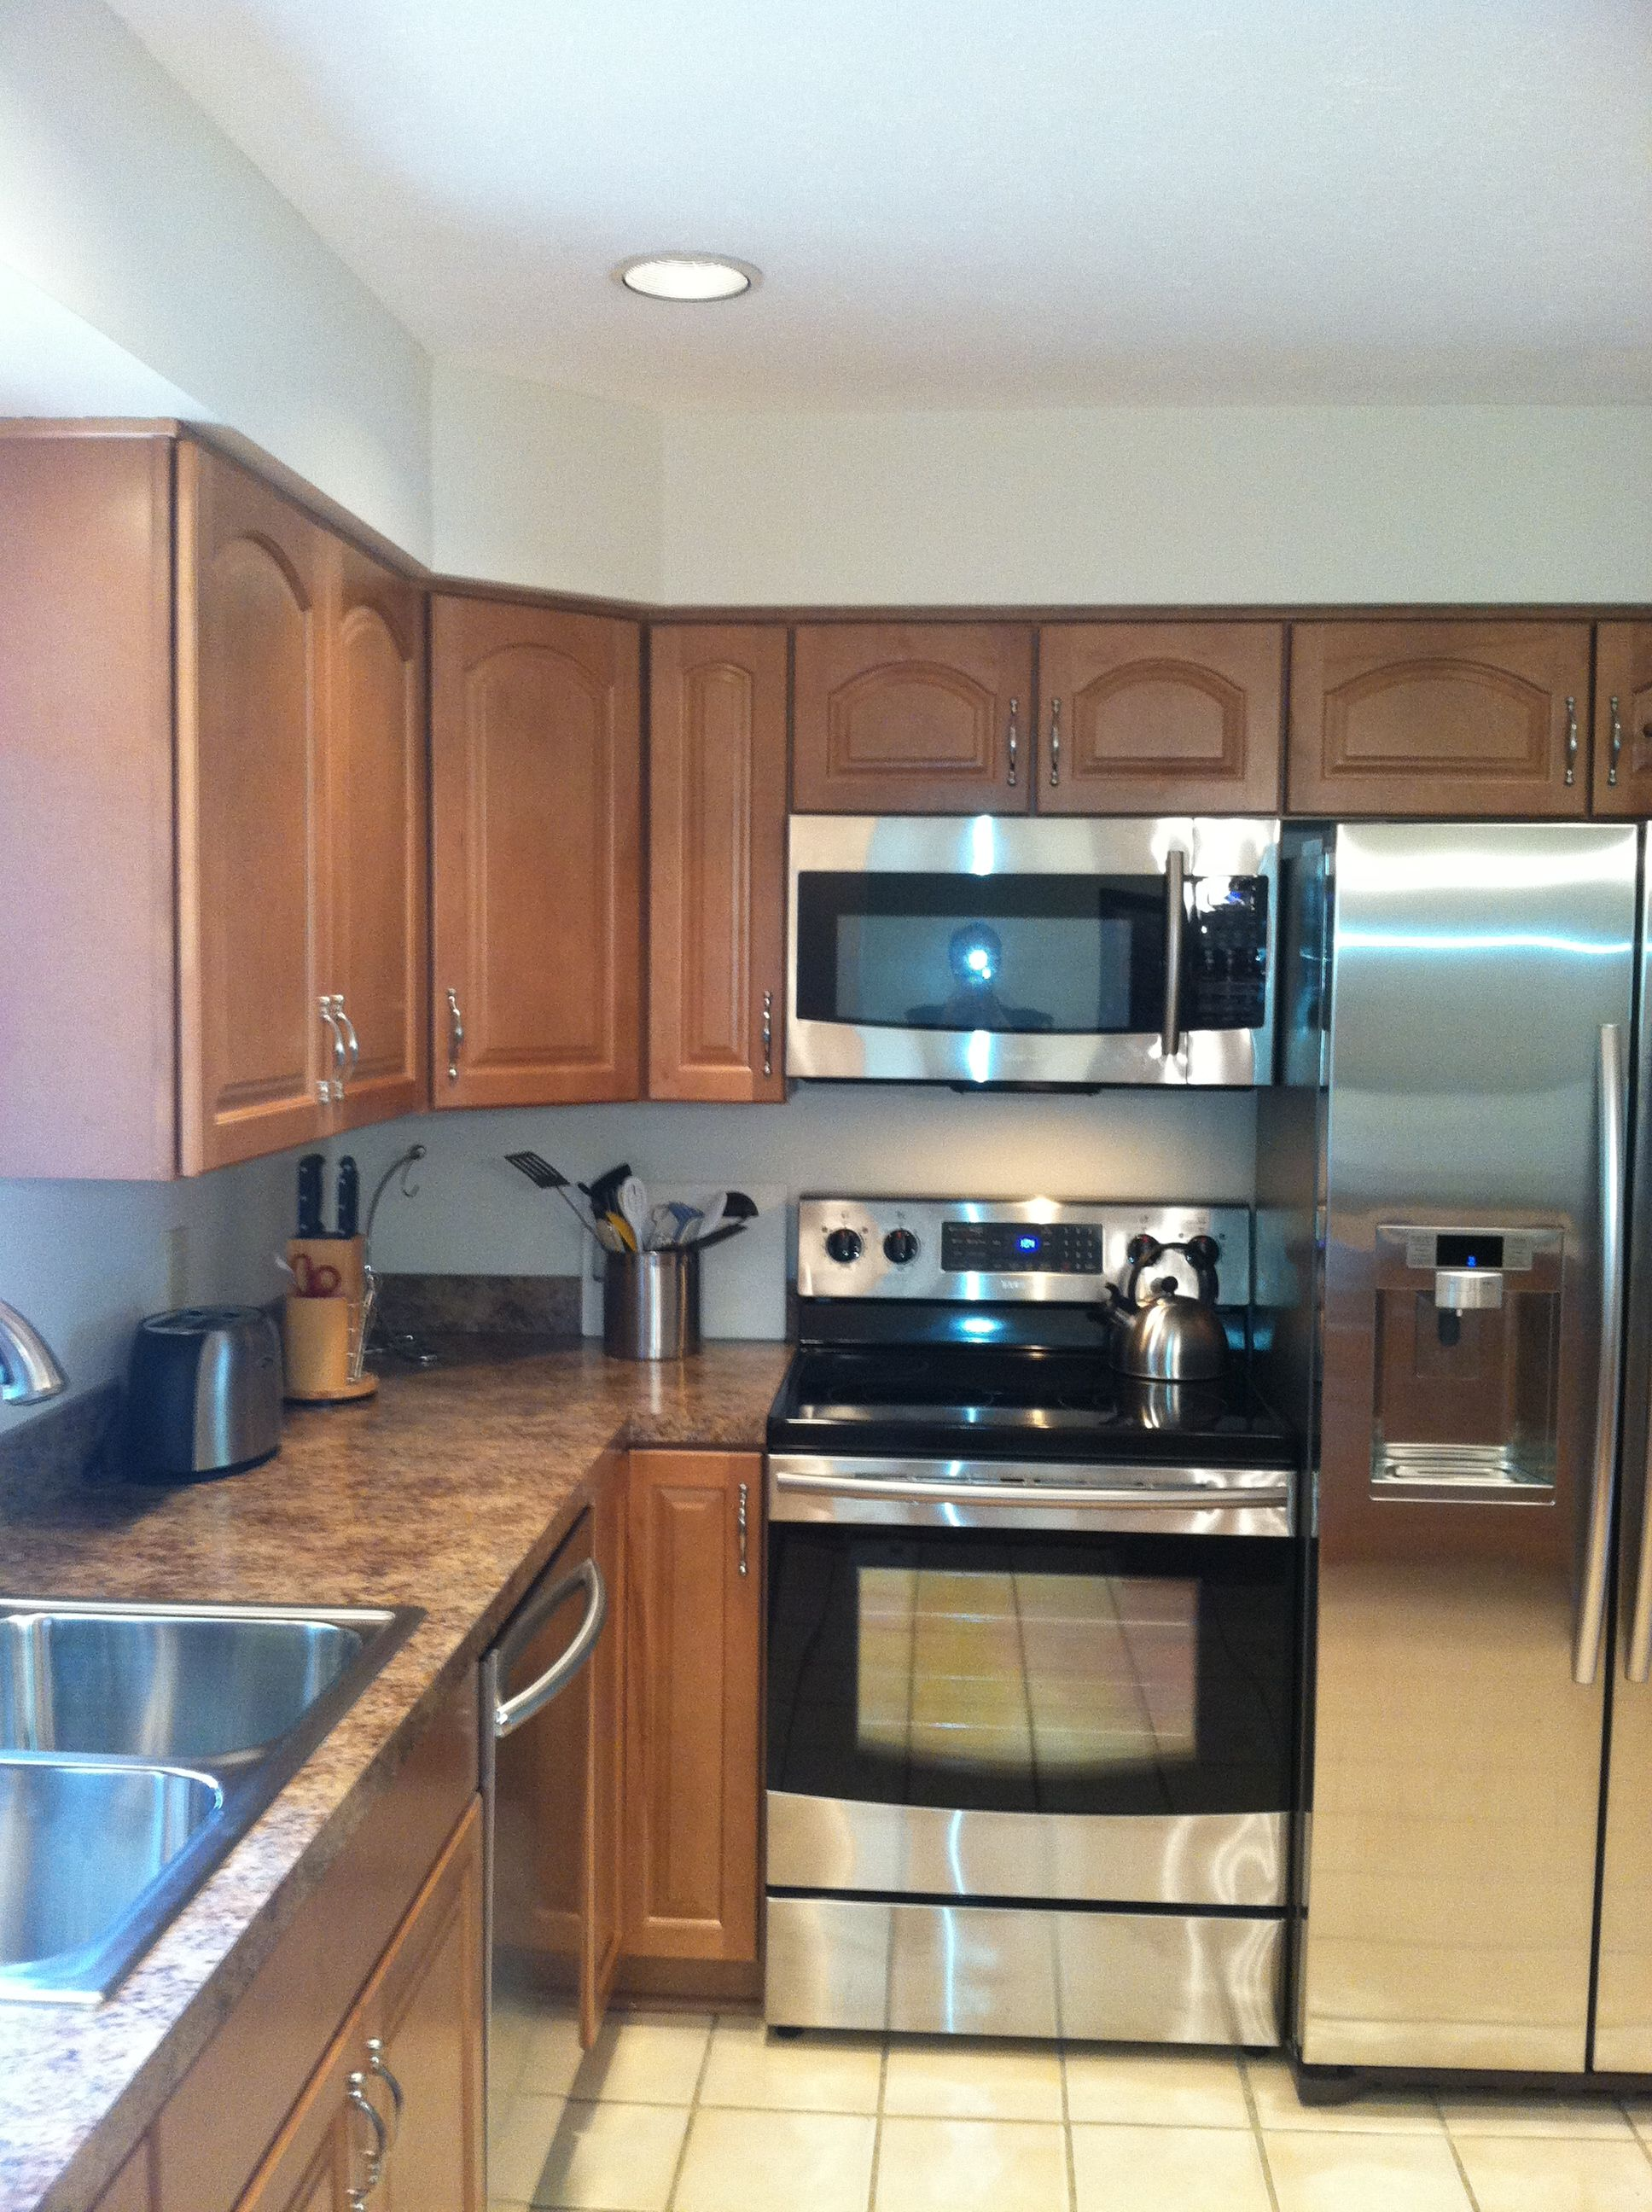 Stainless Steel Cabinets And Countertops Stainless Steel And Black Appliances With Waypoint Maple